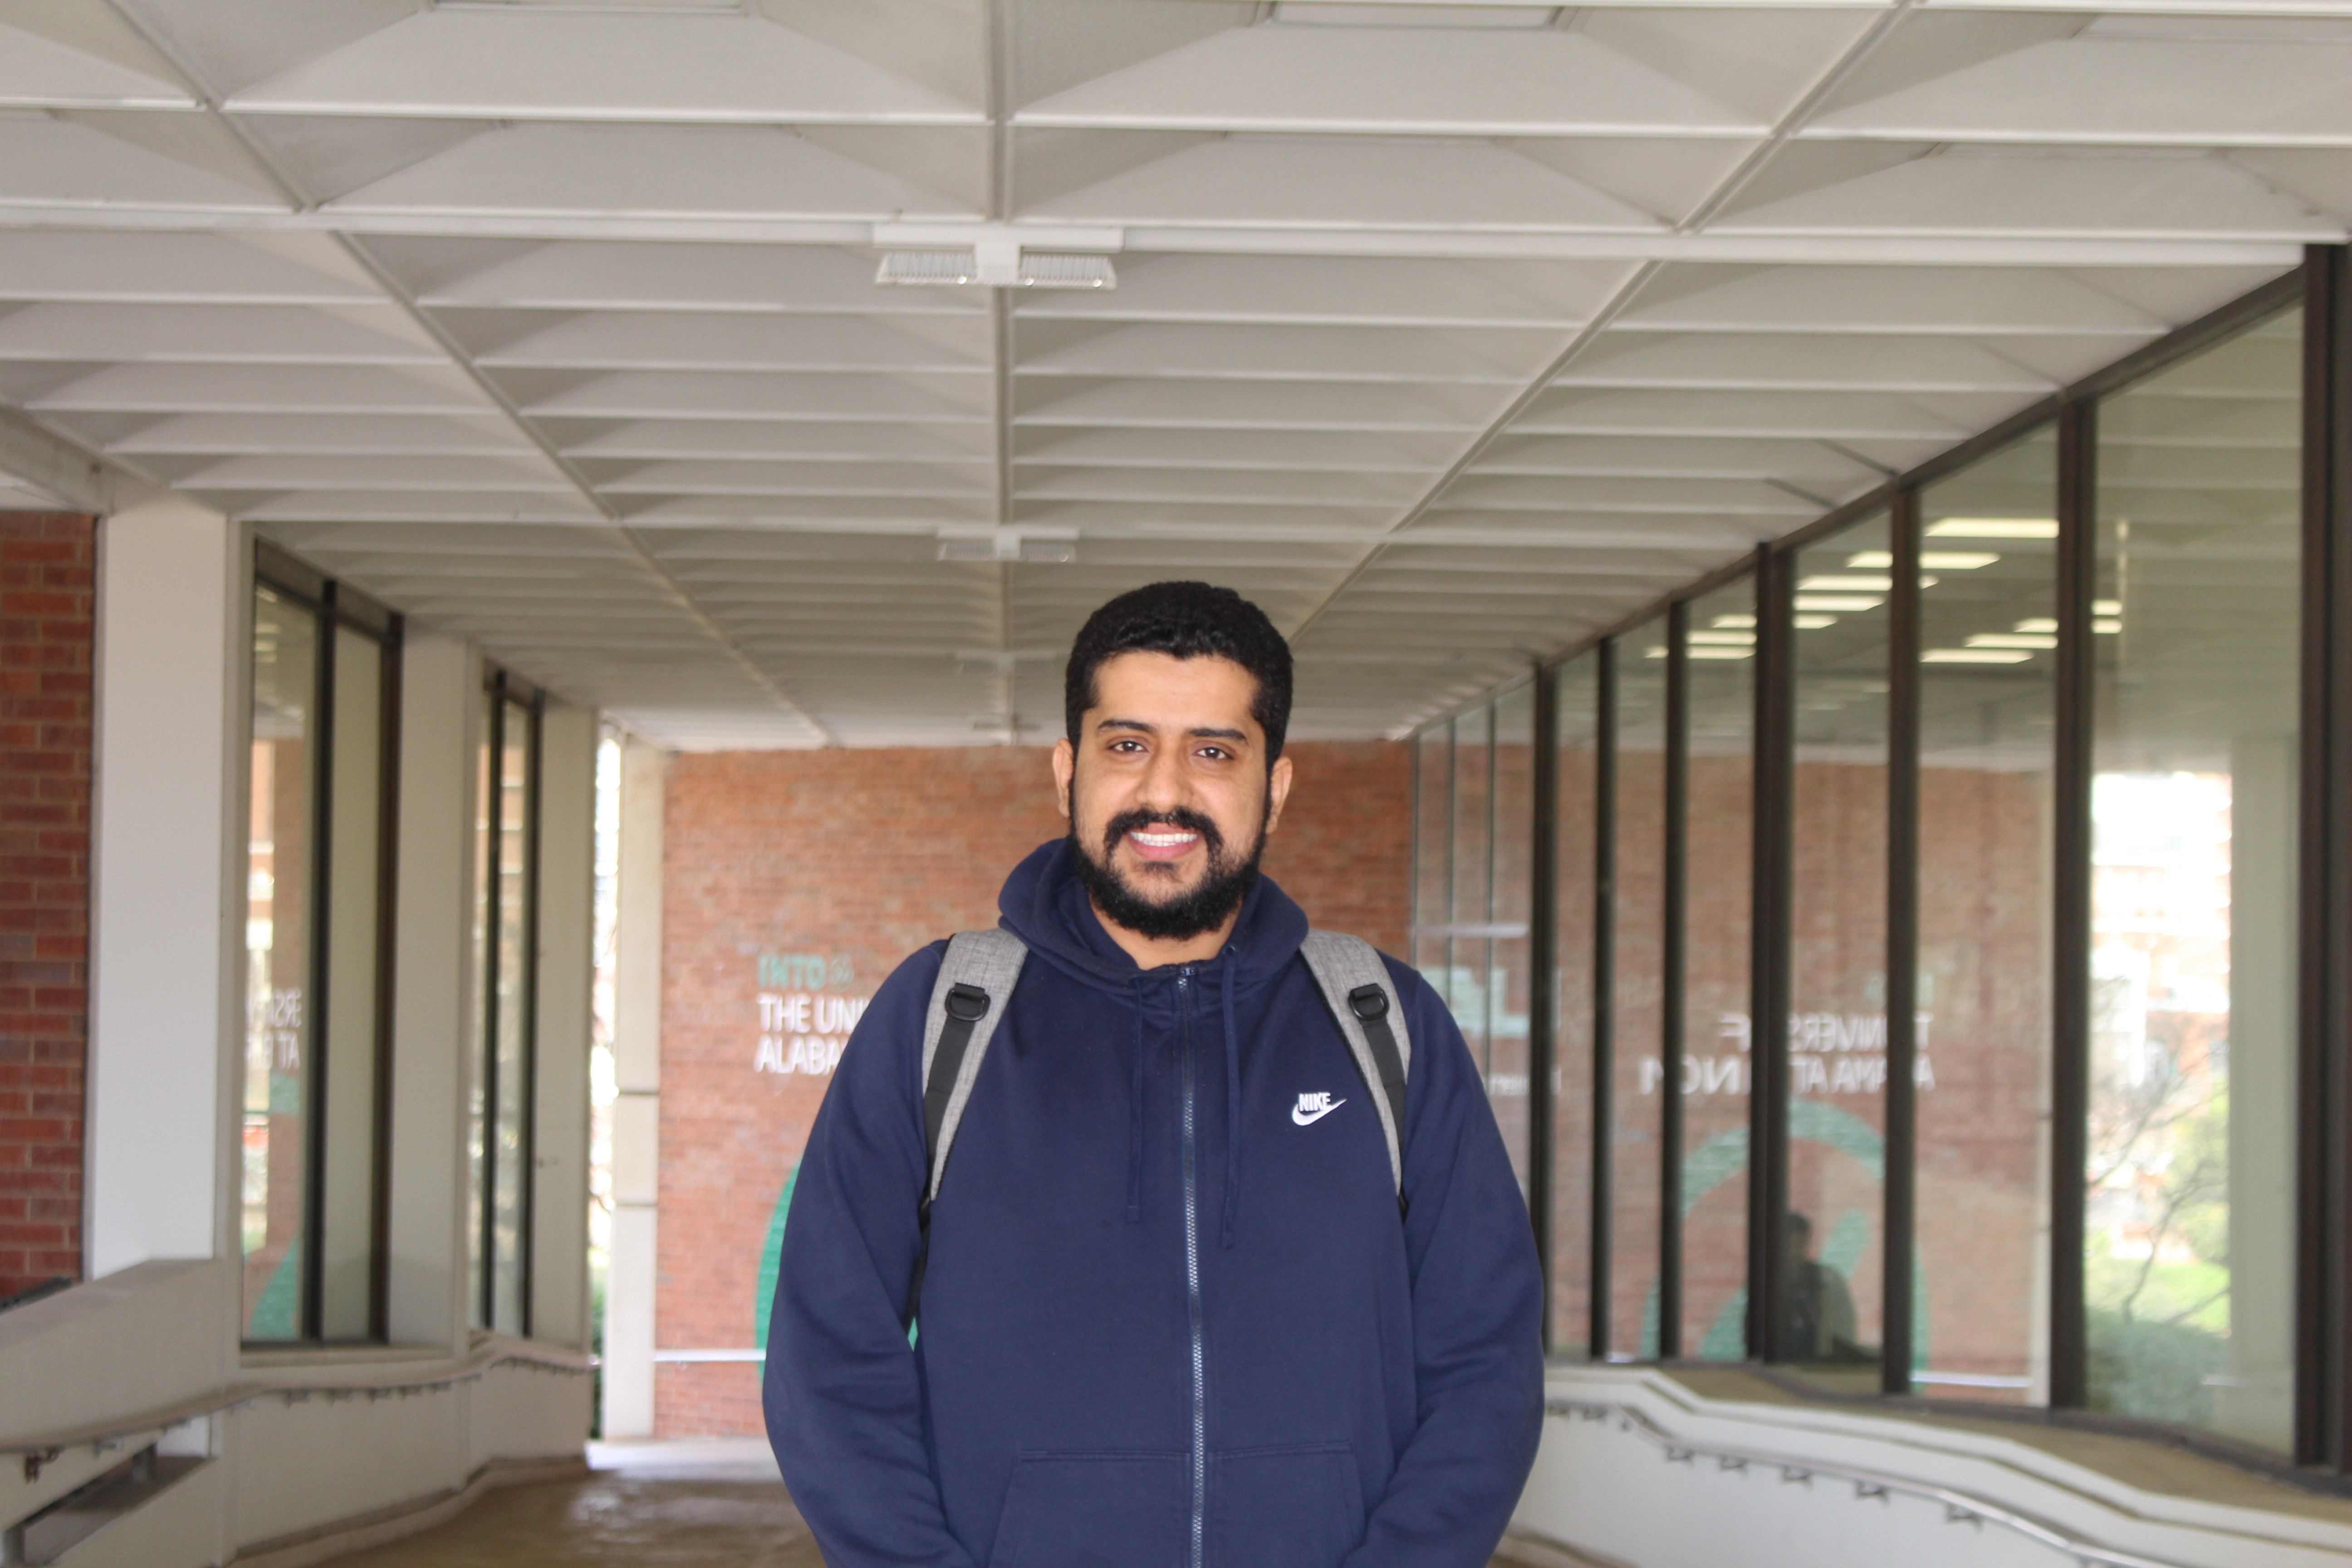 Khalid is an Academic English student at UAB